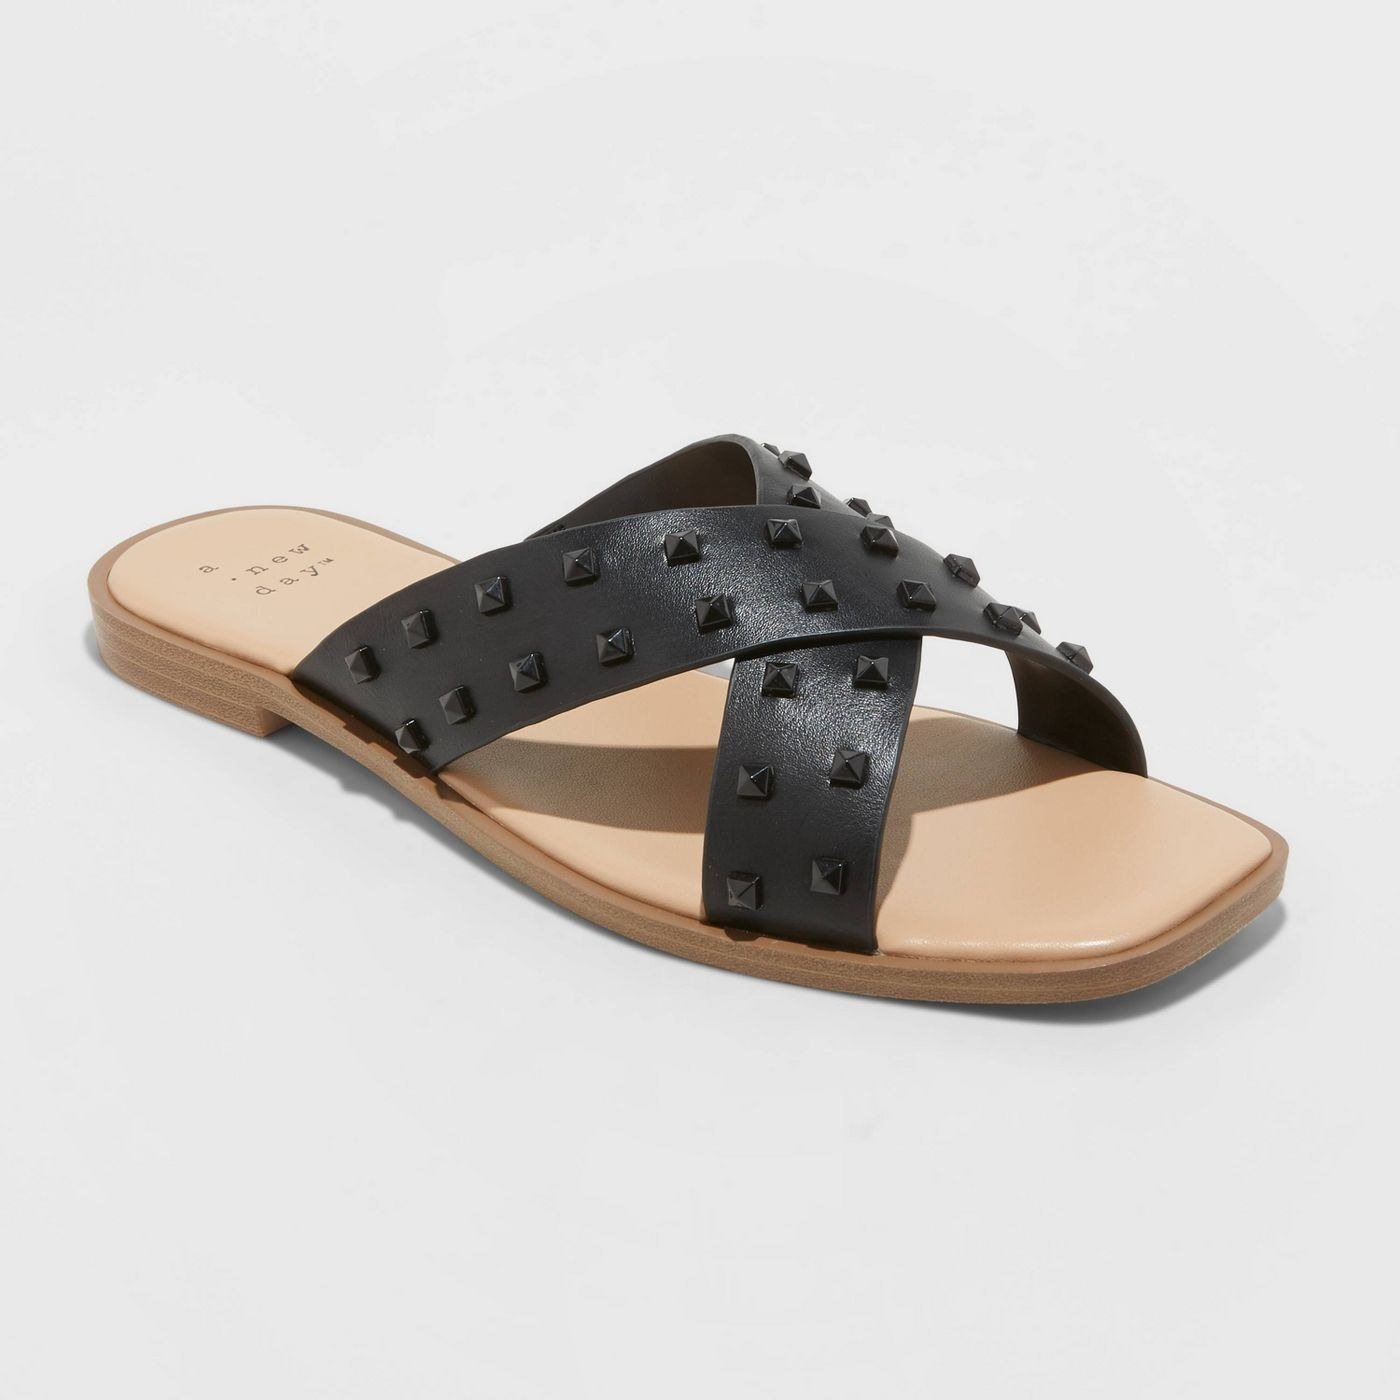 Black slides with beige sole and square toe